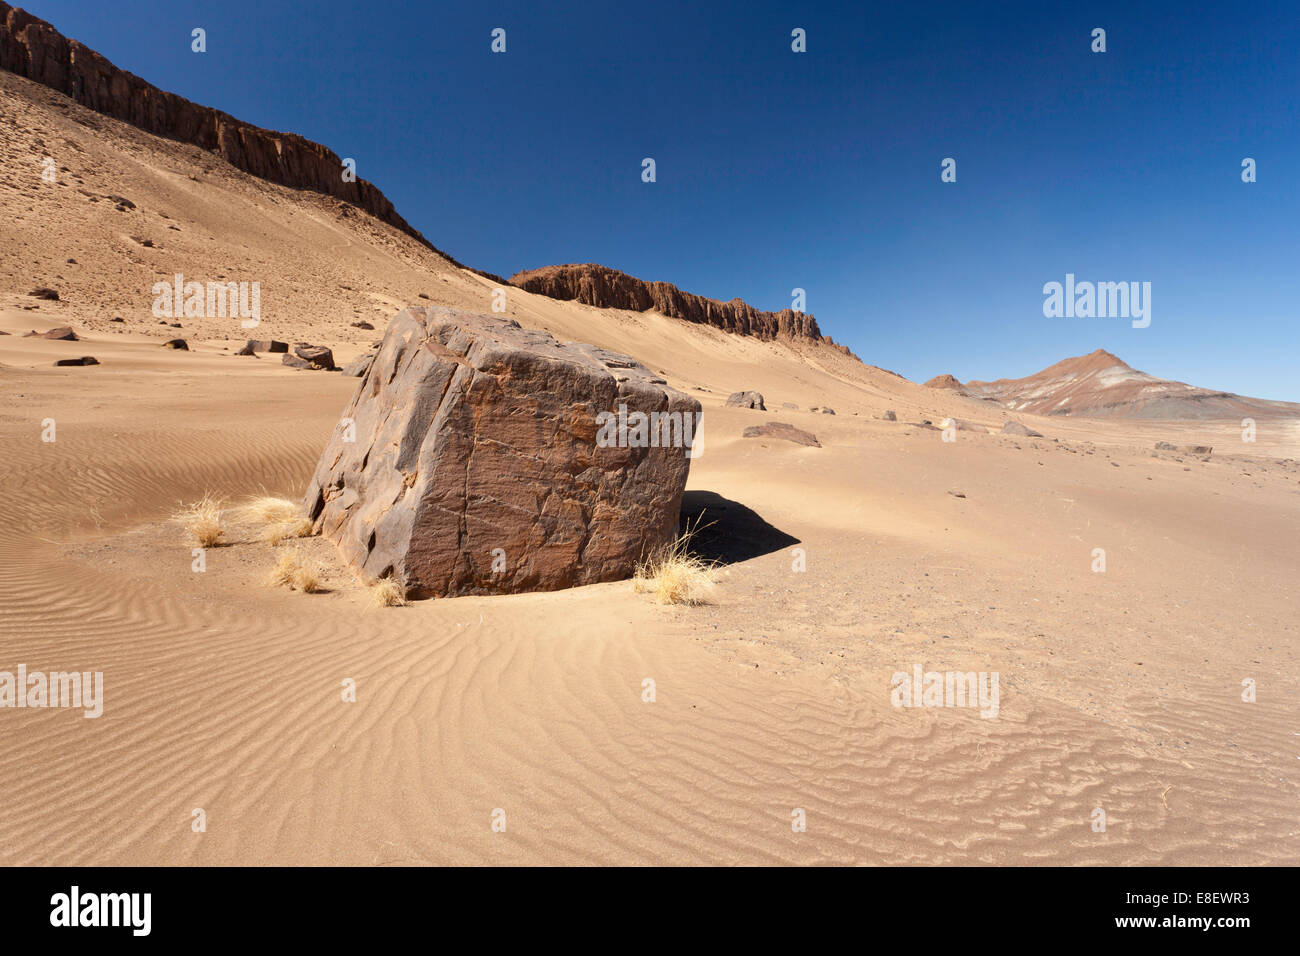 Monolith in the sand desert, Richtersveld National Park, Southern Namibia, Namibia - Stock Image